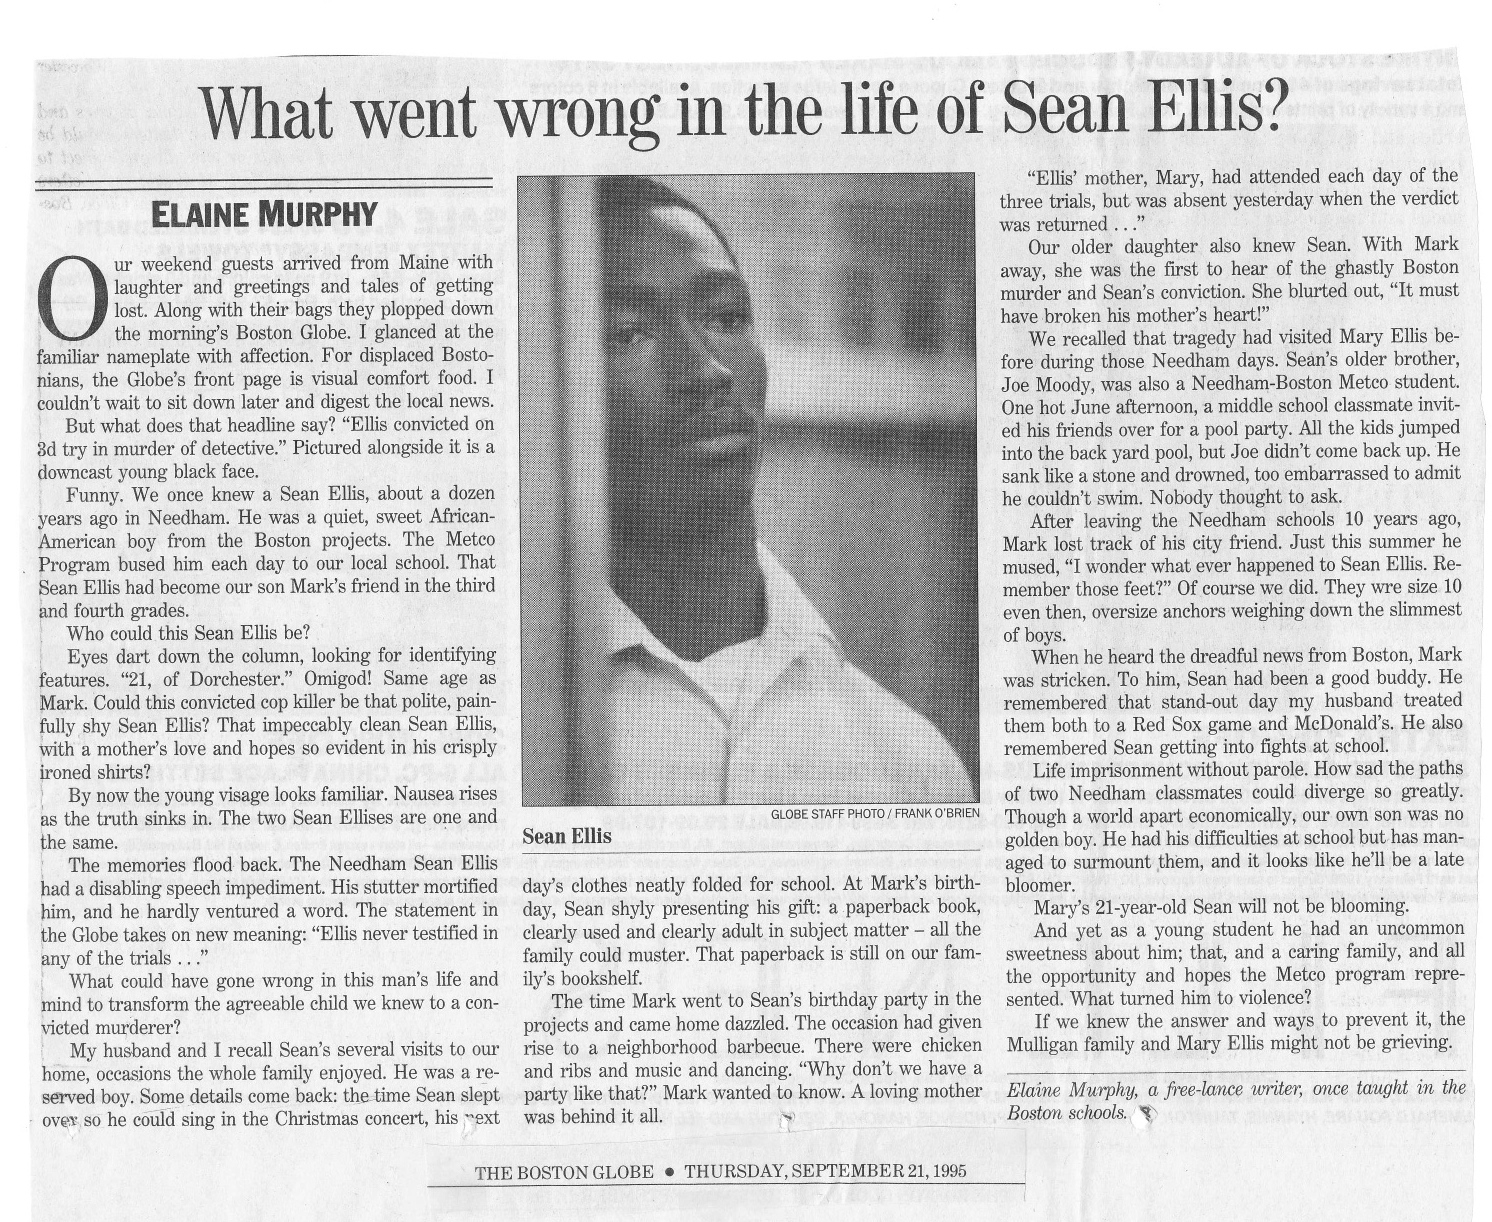 The Boston Globe op-ed piece I submitted from Montreal in September 1995 upon learning of Sean Ellis's conviction (text below).